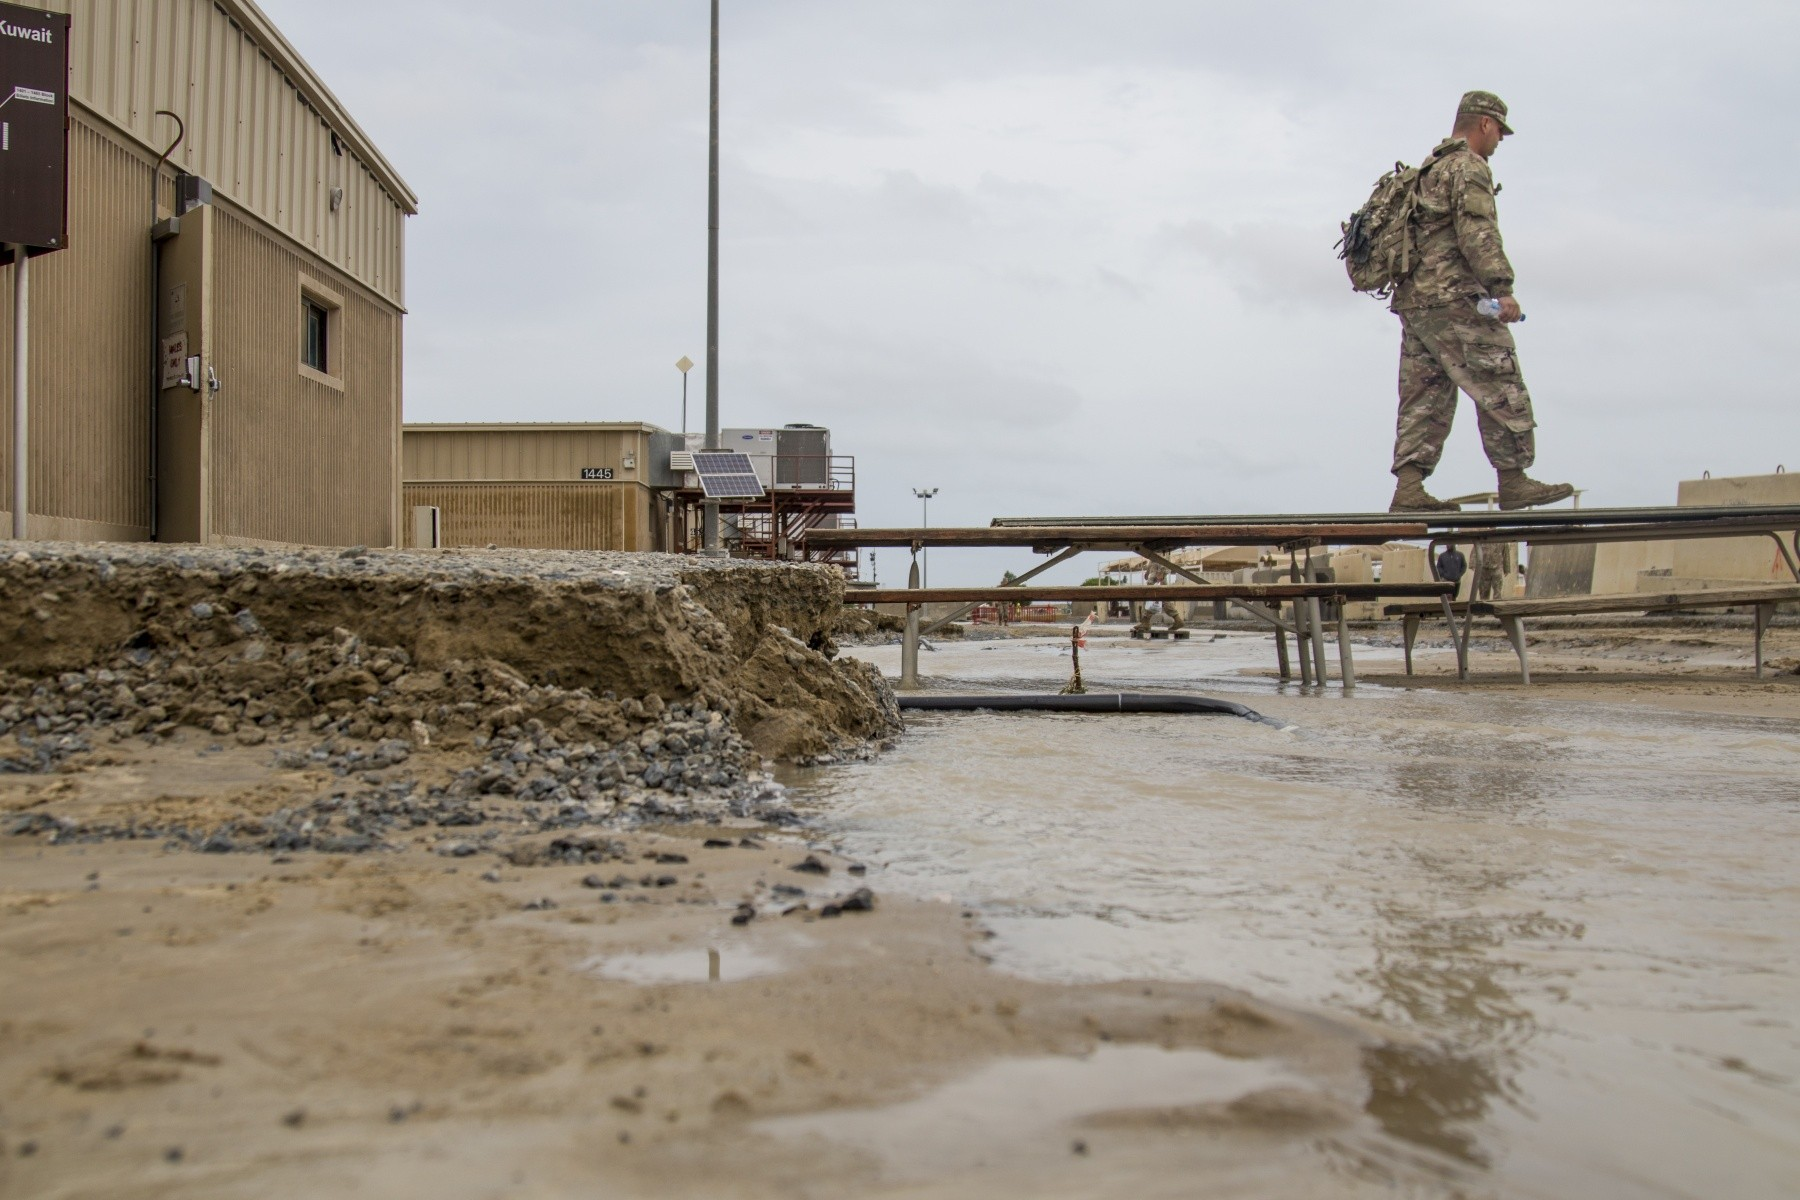 Soldiers repair flood damage across Kuwait | Article | The